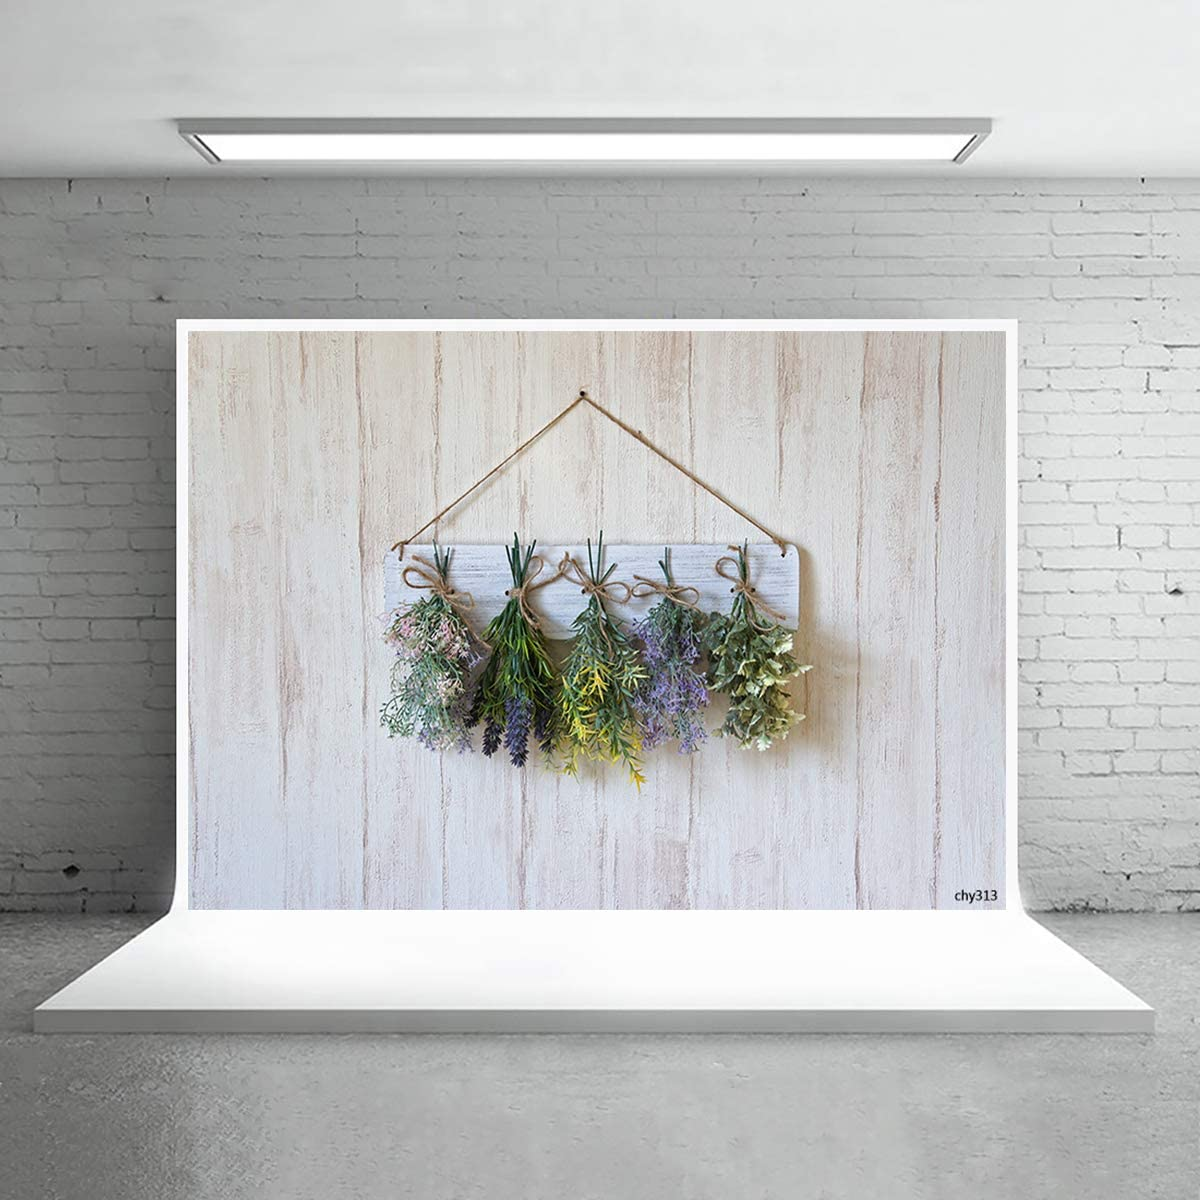 Levoo Flannel Flowers and Grass Wall Background Banner Photography Studio Boy Girl Birthday Family Party Holiday Celebration Romantic Wedding Photography Backdrop Home Decoration 6x6ft,chy309